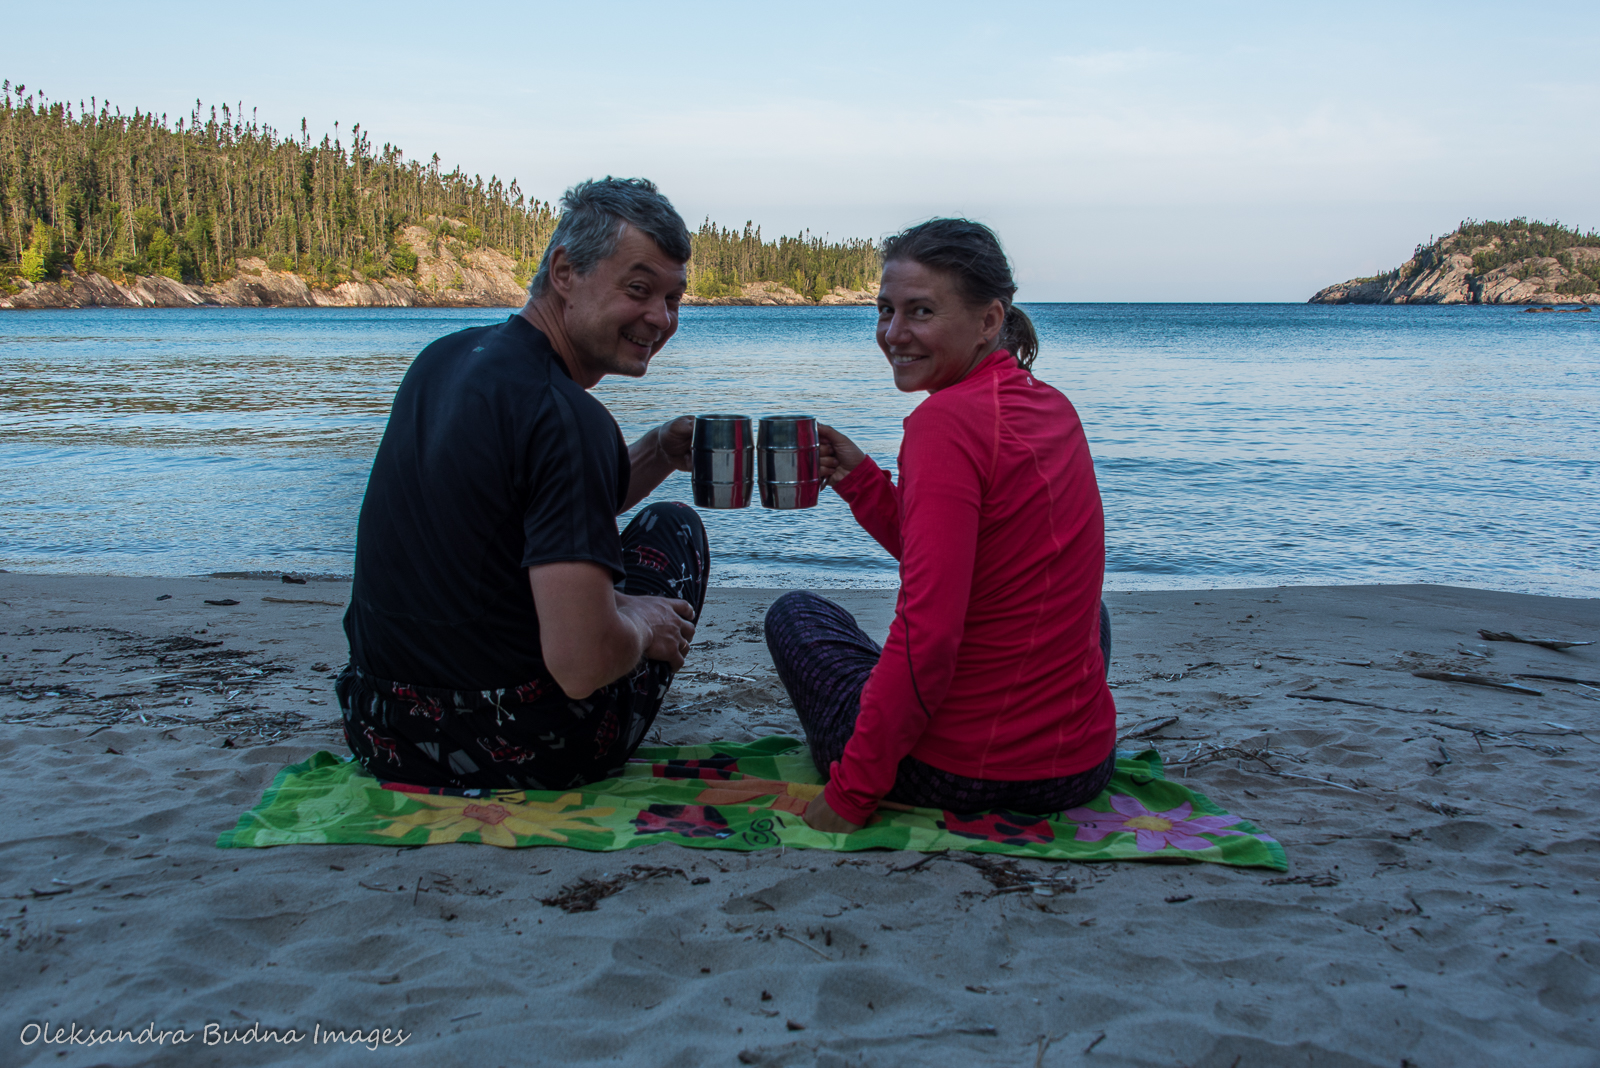 morning coffe at Fisherman's Cove in Pukaskwa